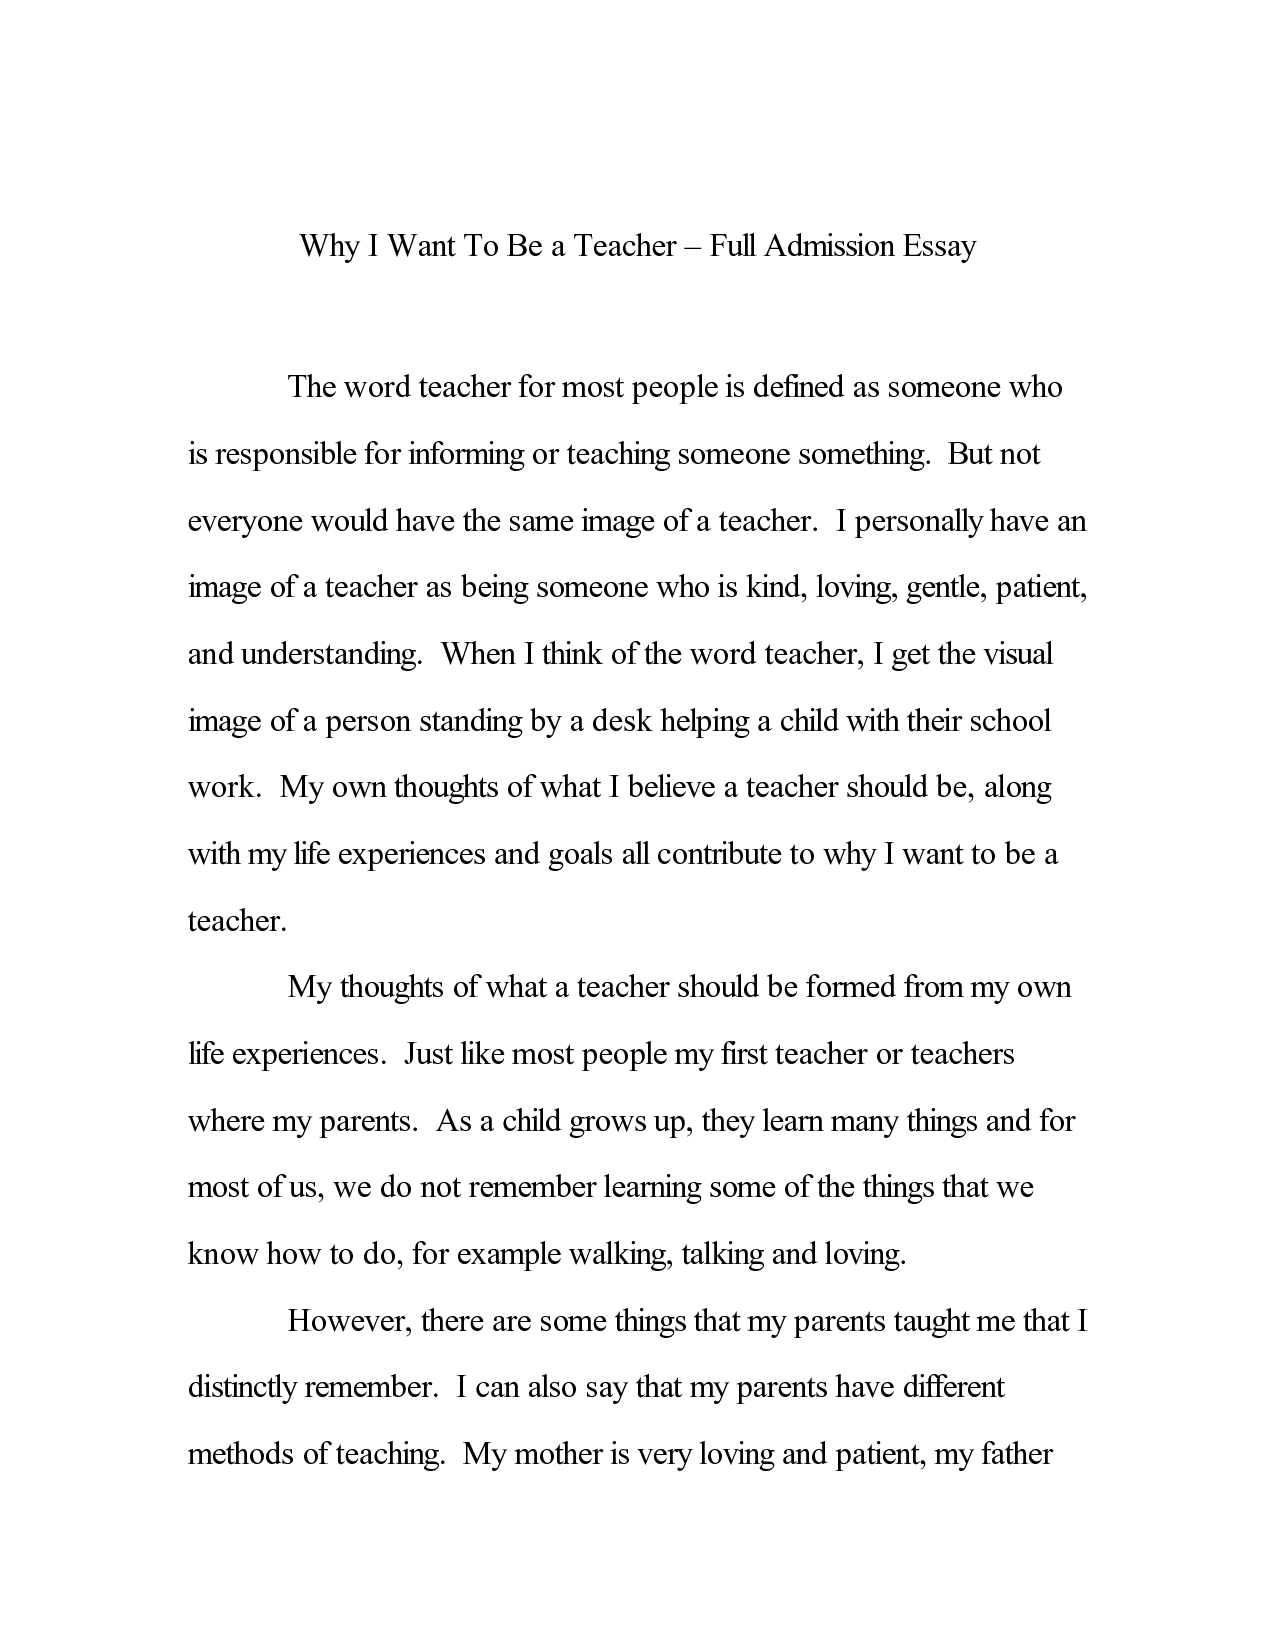 003 Sample College Application Essays Essay Remarkable About Diversity Pdf Leadership Full